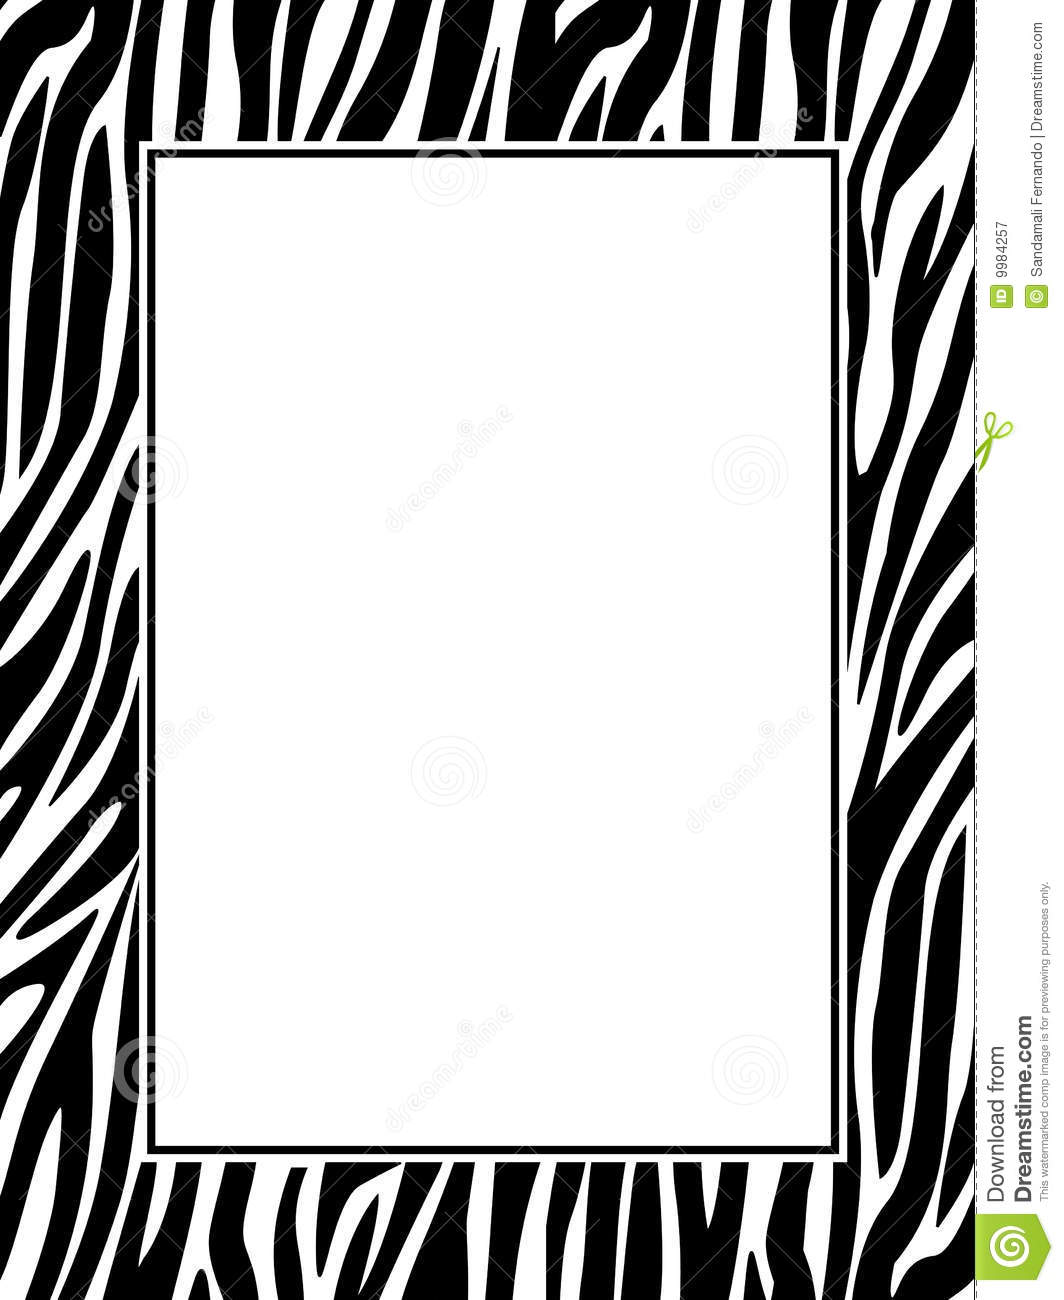 Zebra Print Border Royalty Free Stock Photography - Image: 9984257